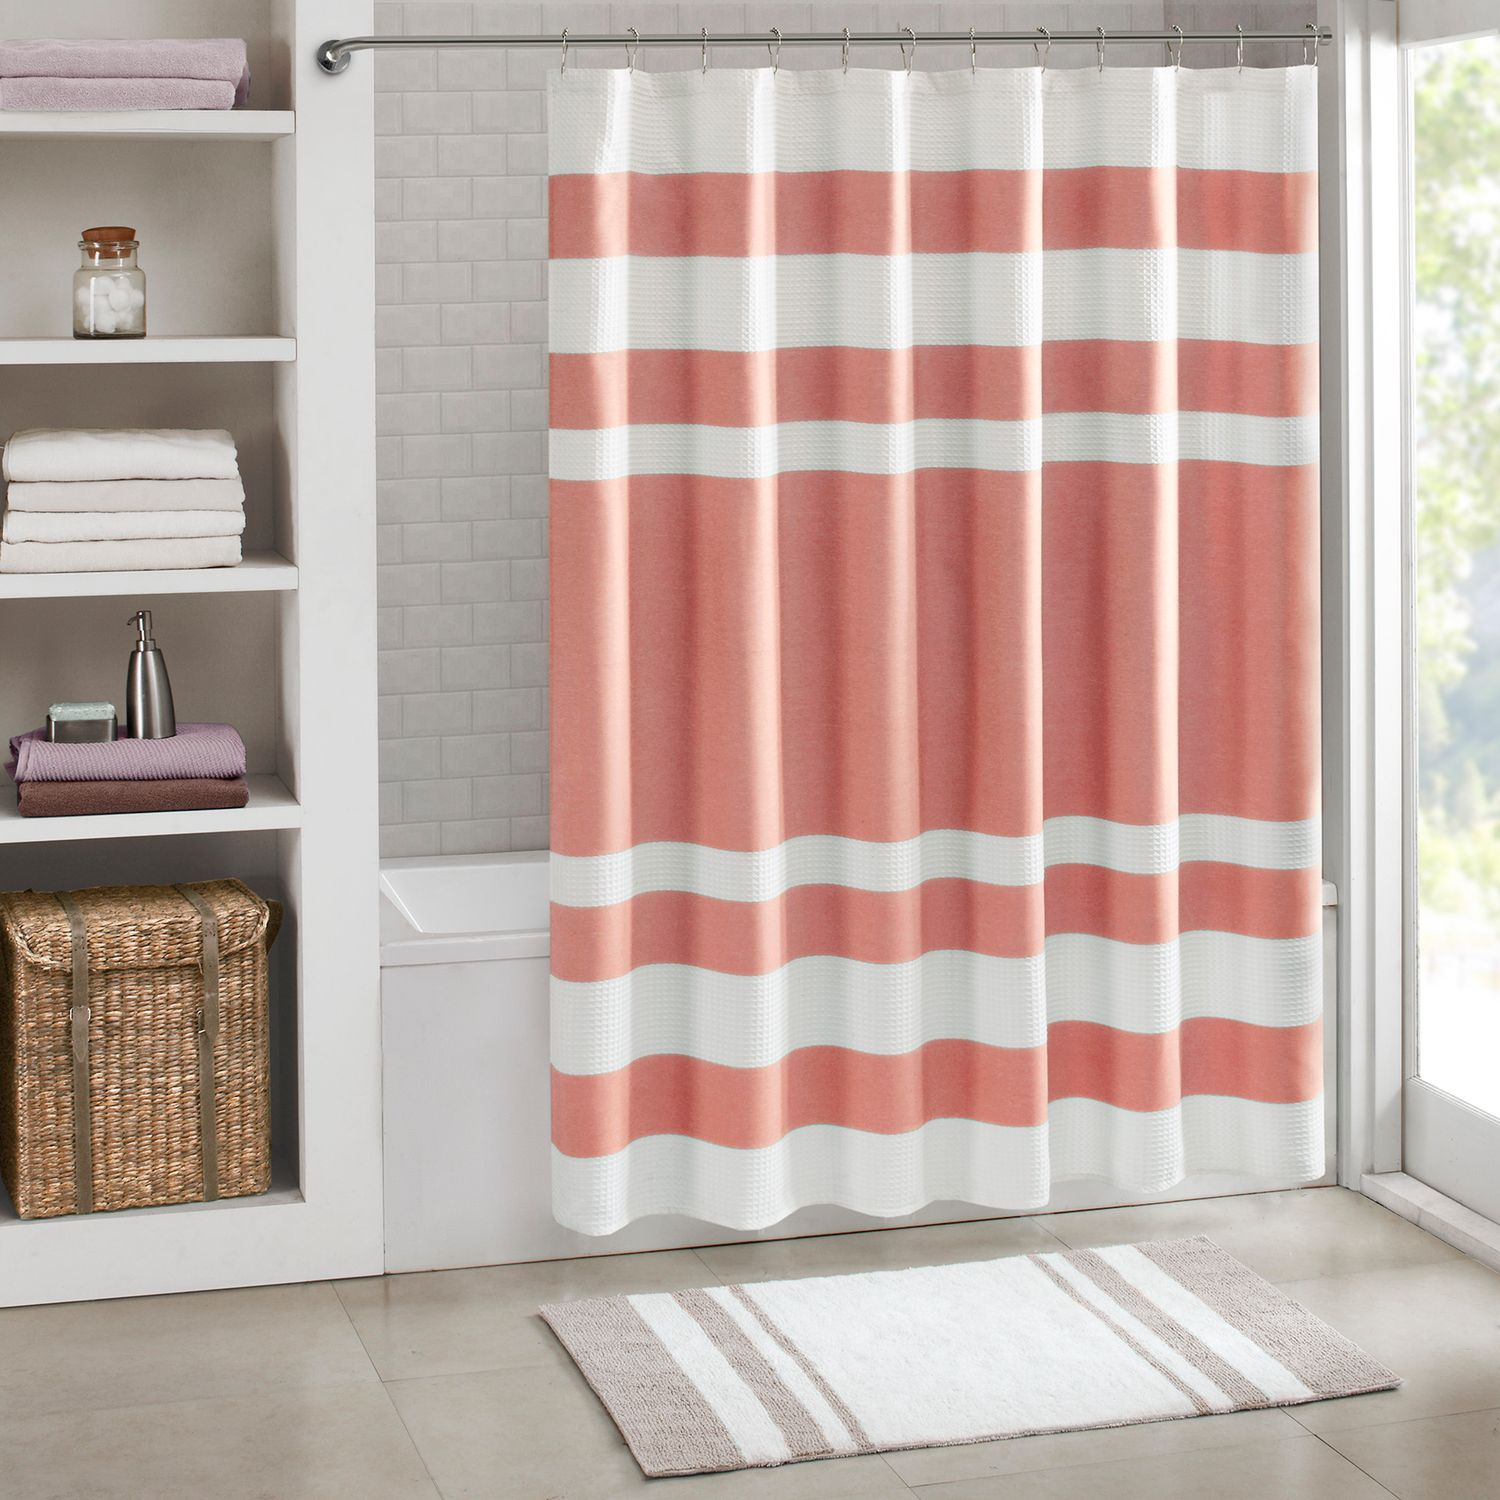 Exceptionnel Madison Park Spa Waffle Weave 3M Scotchgard Fabric Shower Curtain